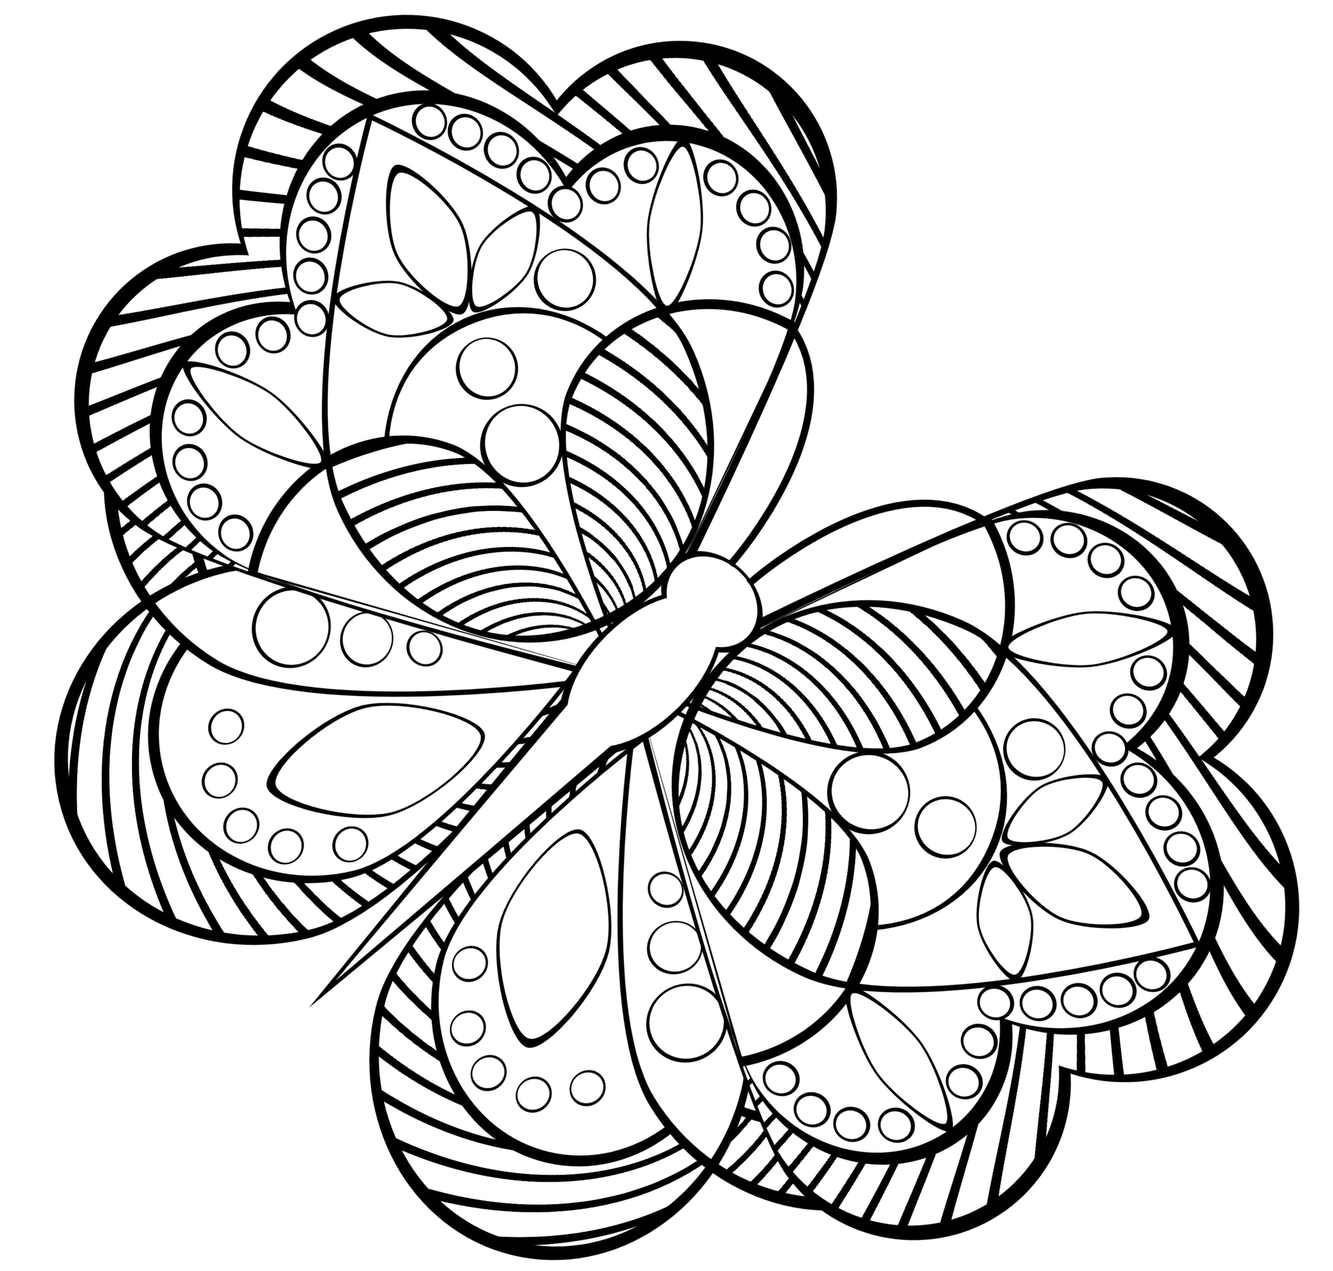 FREE PRINTABLE GEOMETRIC COLORING PAGES | Coloringpages321.com ...